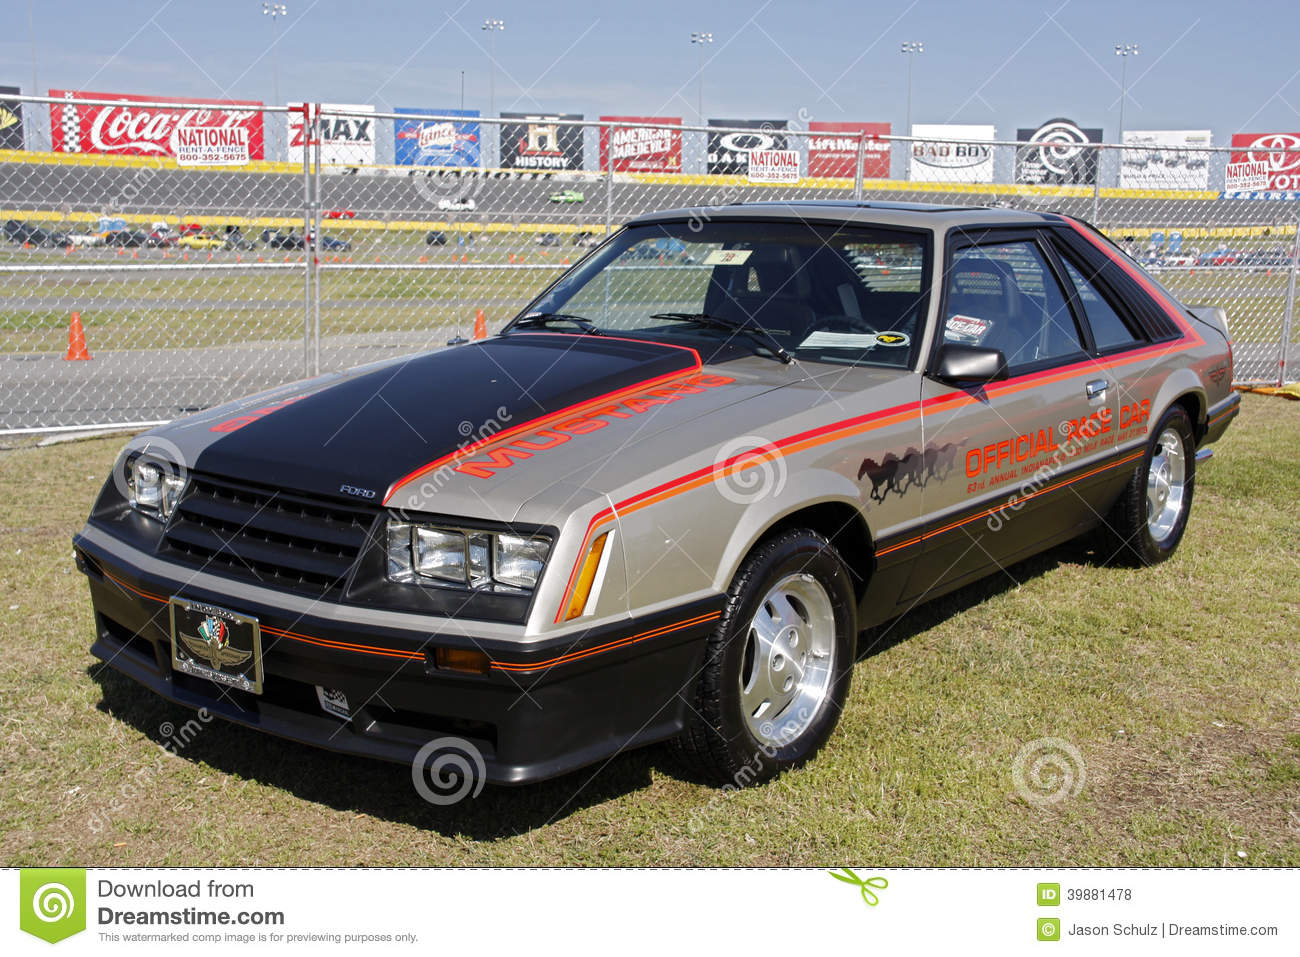 Ford Mustang Pace Car am 50. Jahrestags-Ereignis Charlotte